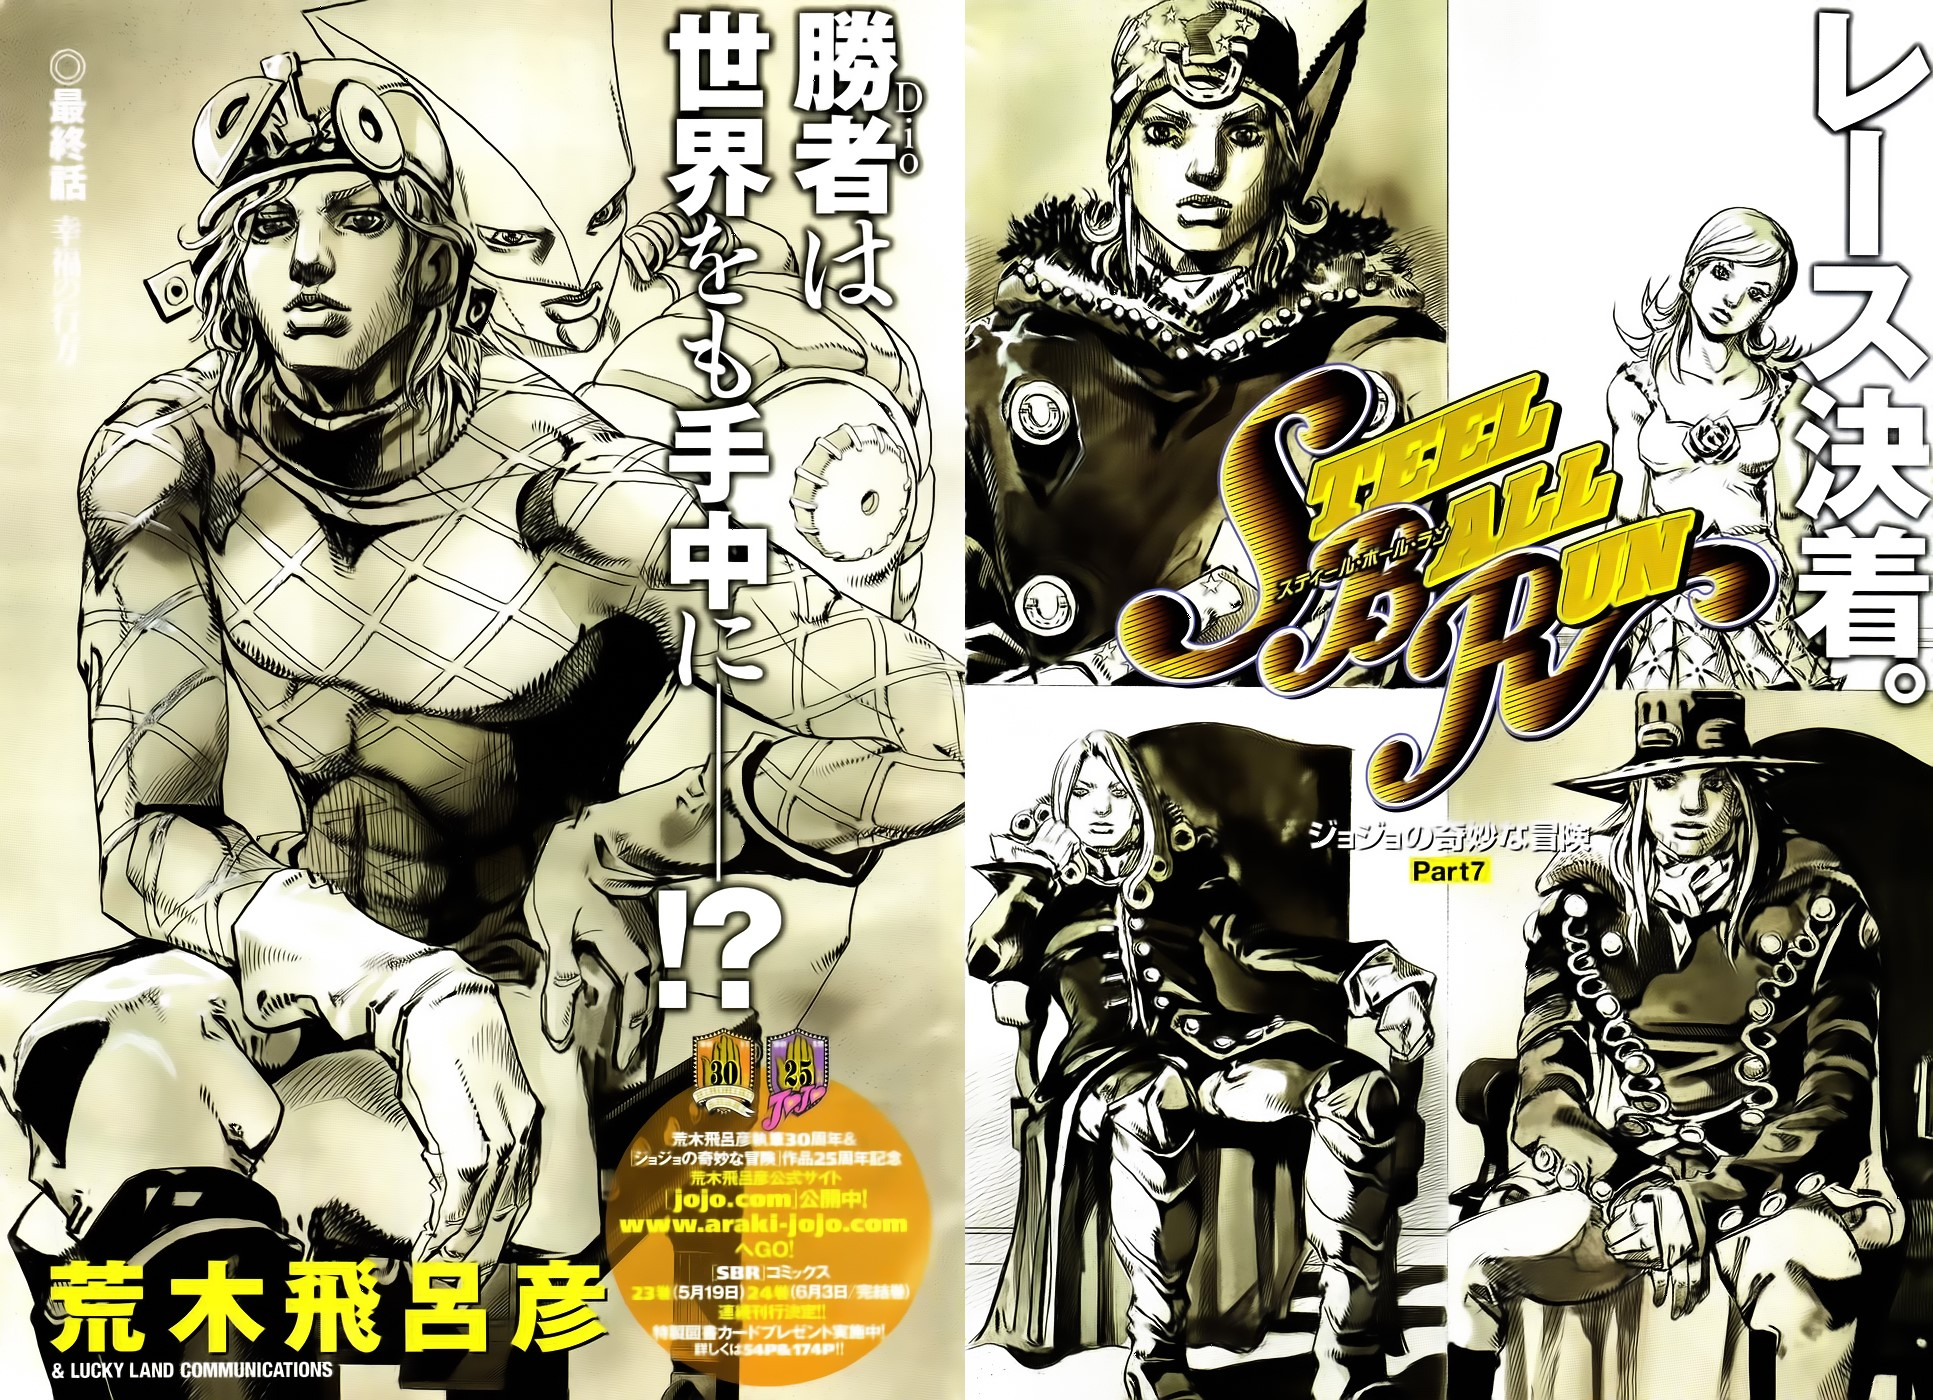 SBR Chapter 95 Magazine Cover B